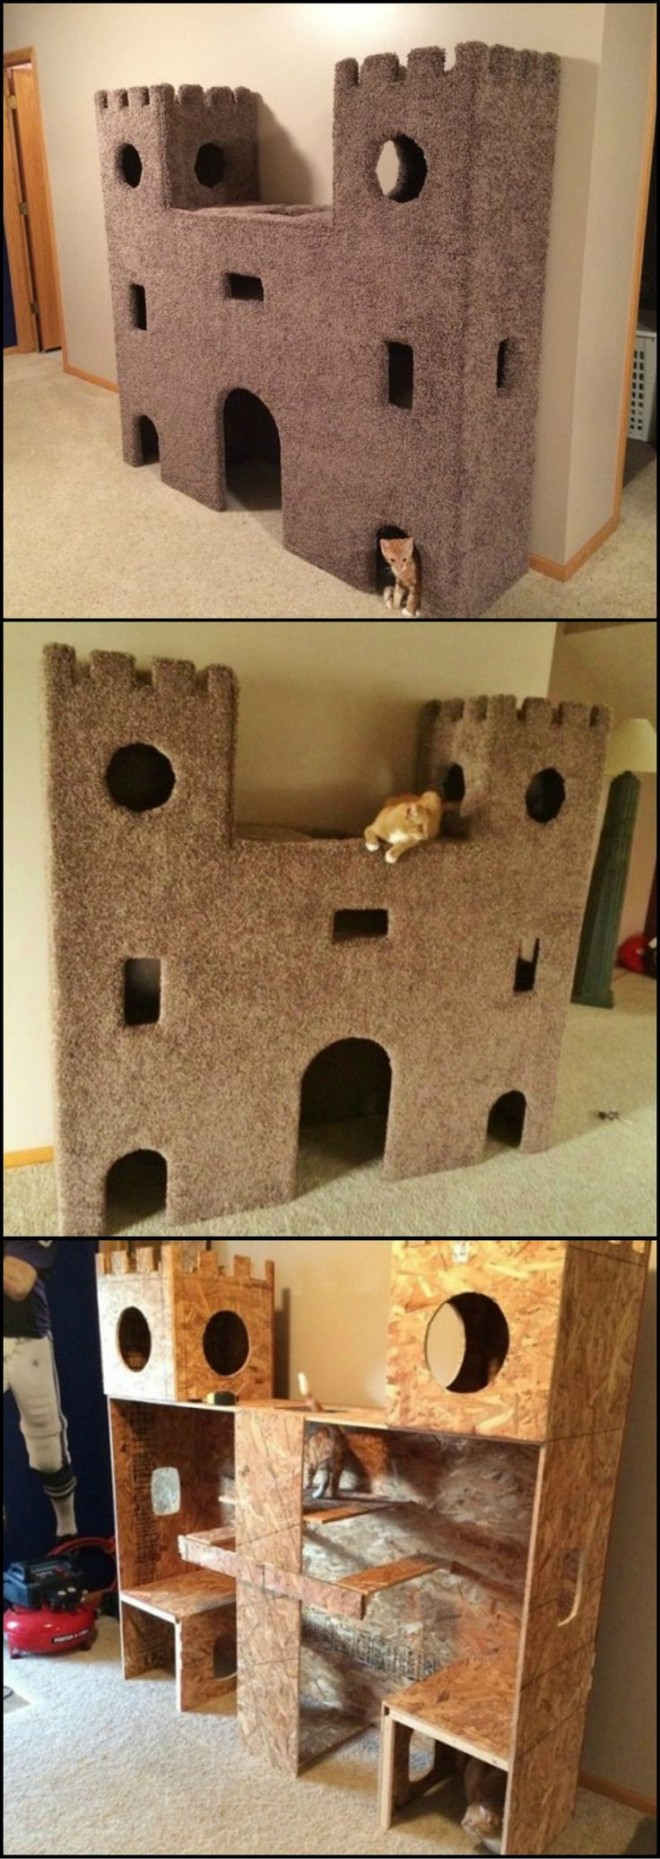 How To Build A Cat Castle How To Instructions